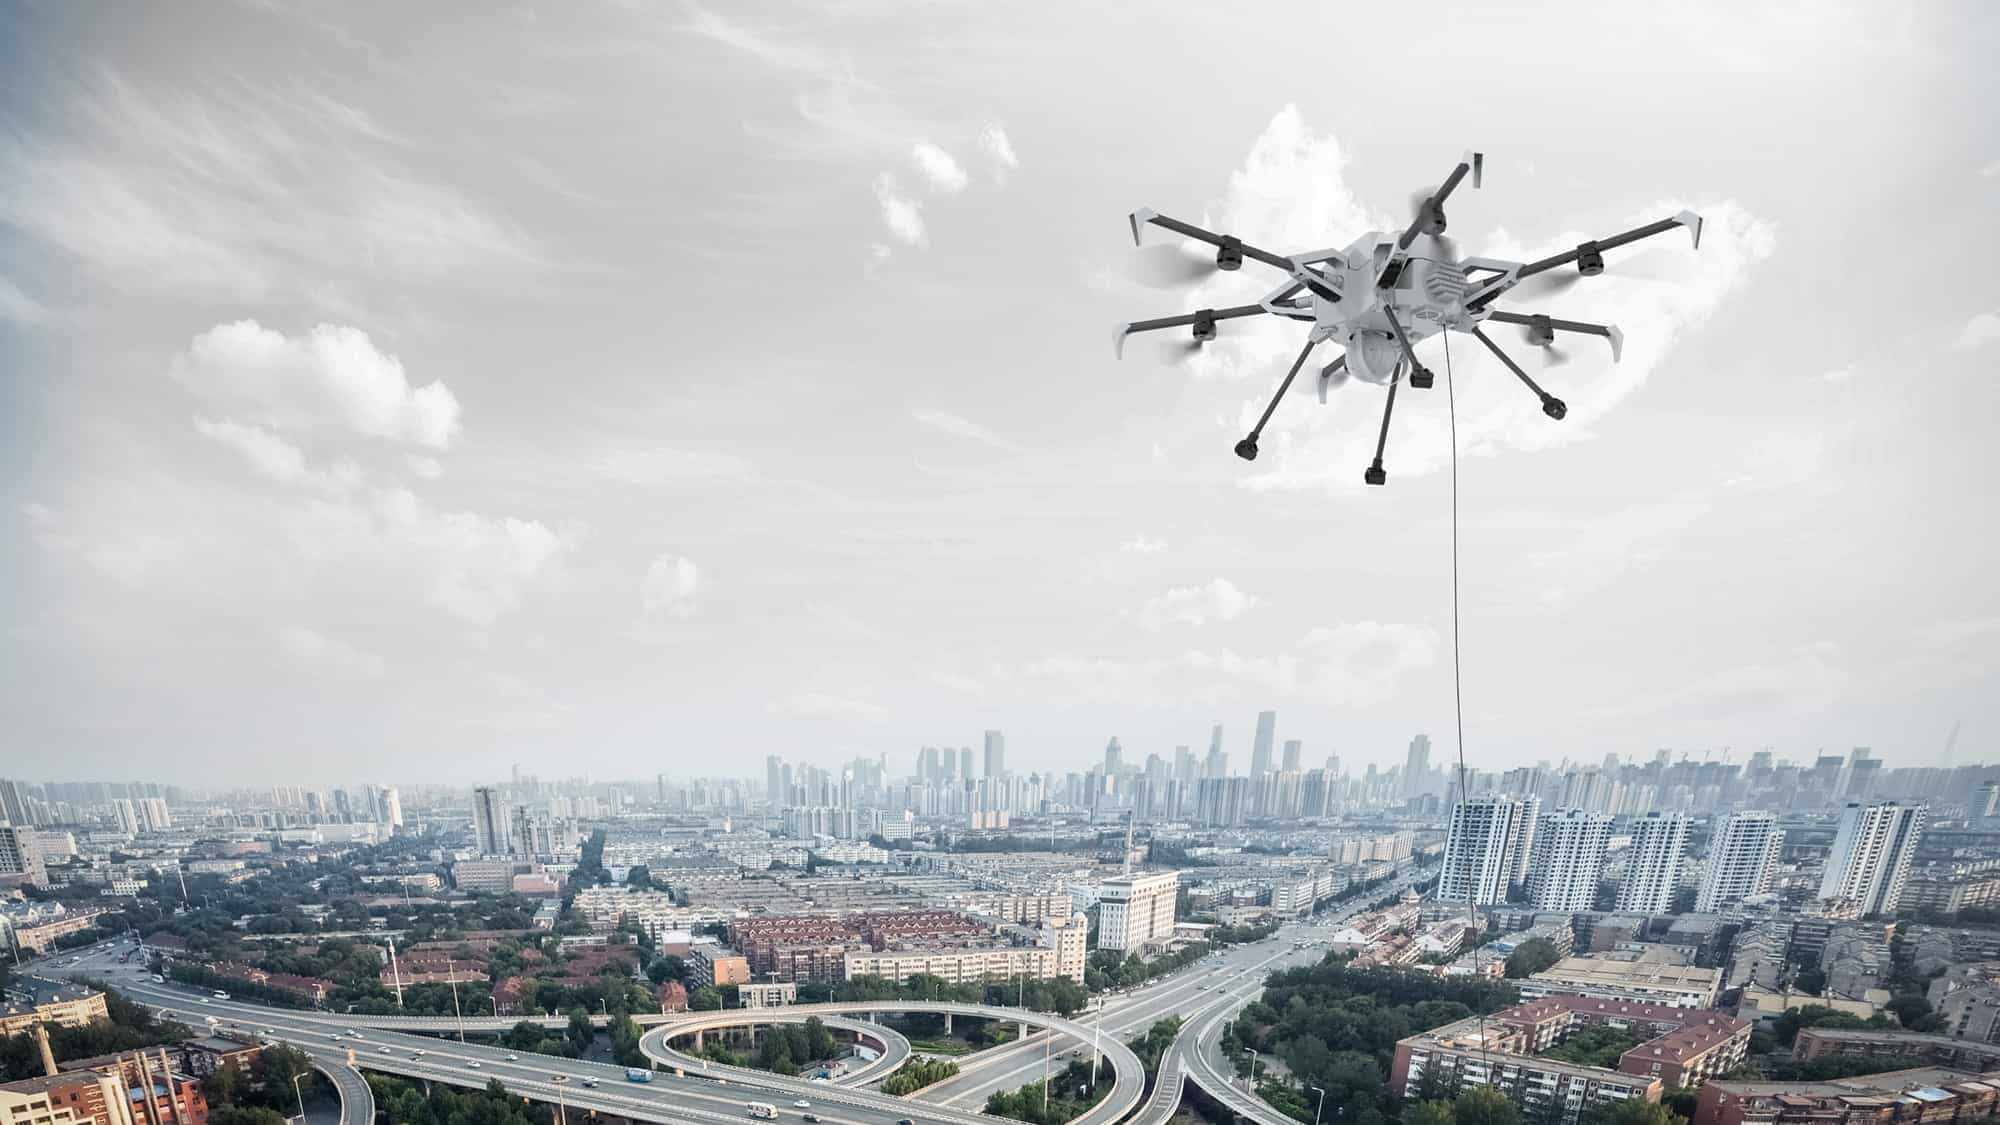 Elistair Develops Tethered Drone Systems For Military